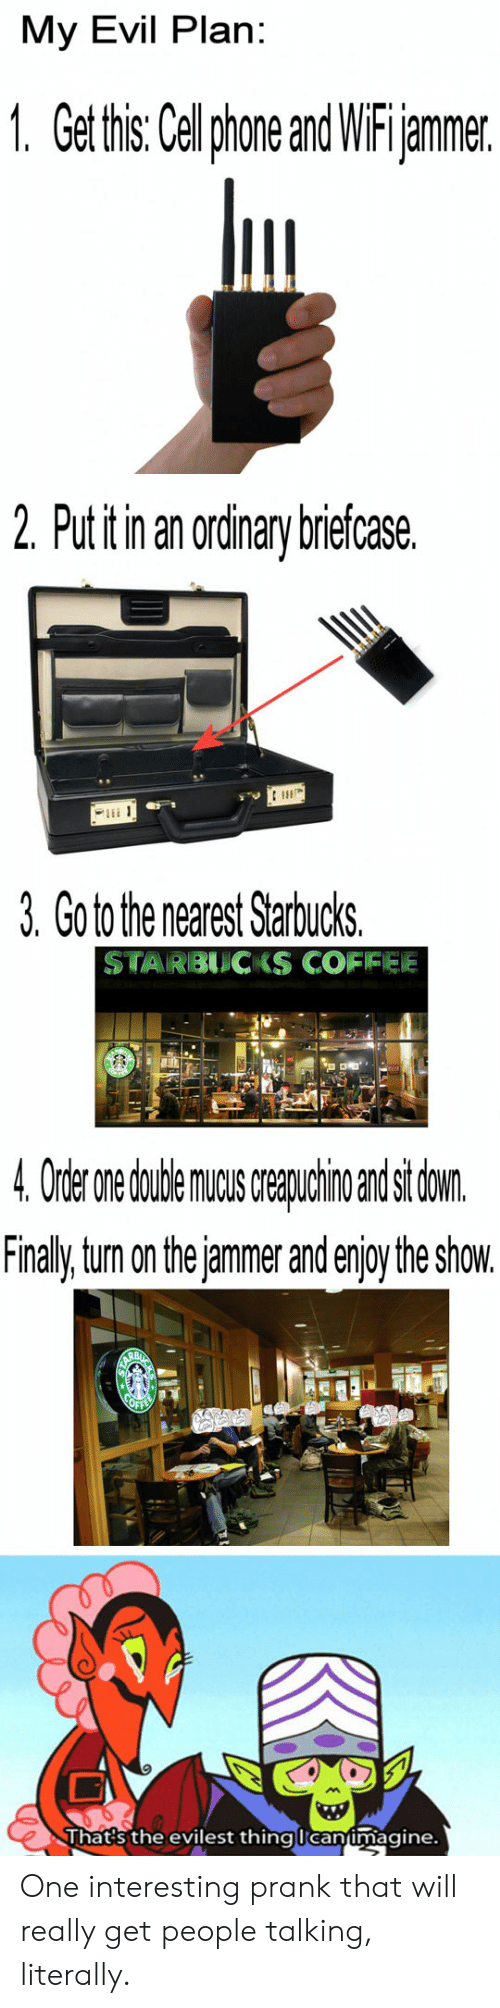 Tum: My Evil Plan:  1. Get this: Celphone and WiFijammer.  2. Put itin an ordinary briefcase.  3. Go to the nearest Starbucks.  STARBUCKS COFIFEE  4 Order nedudeaindsi don  Finaly tum on the jammer and enjoy the show.  Thats the evilest thinglcanimagine. One interesting prank that will really get people talking, literally.